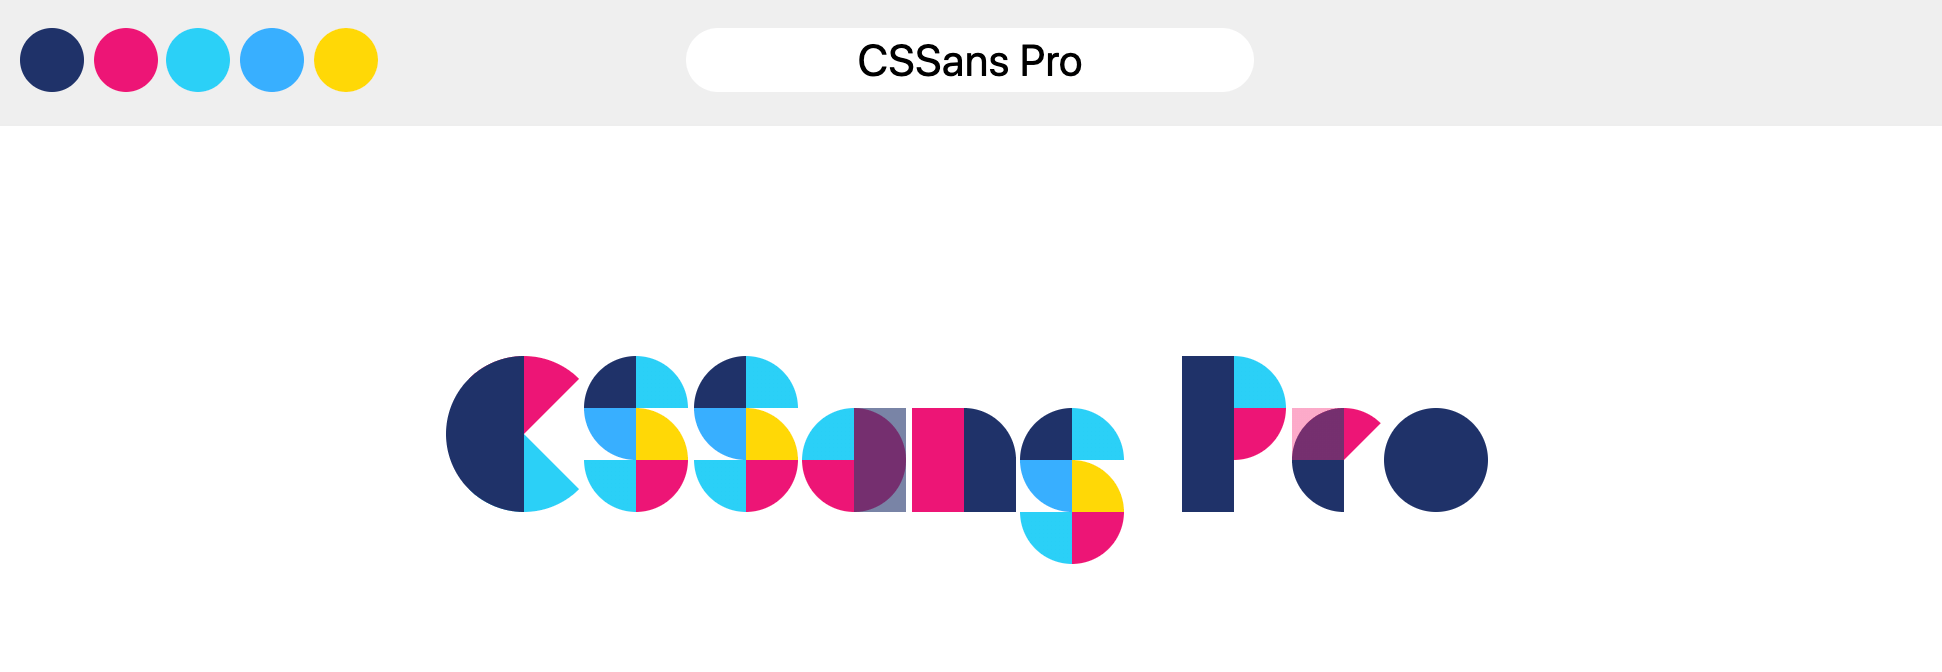 Output of using CSSans Pro, geographic shapes in multiple colors combined to make letterforms.